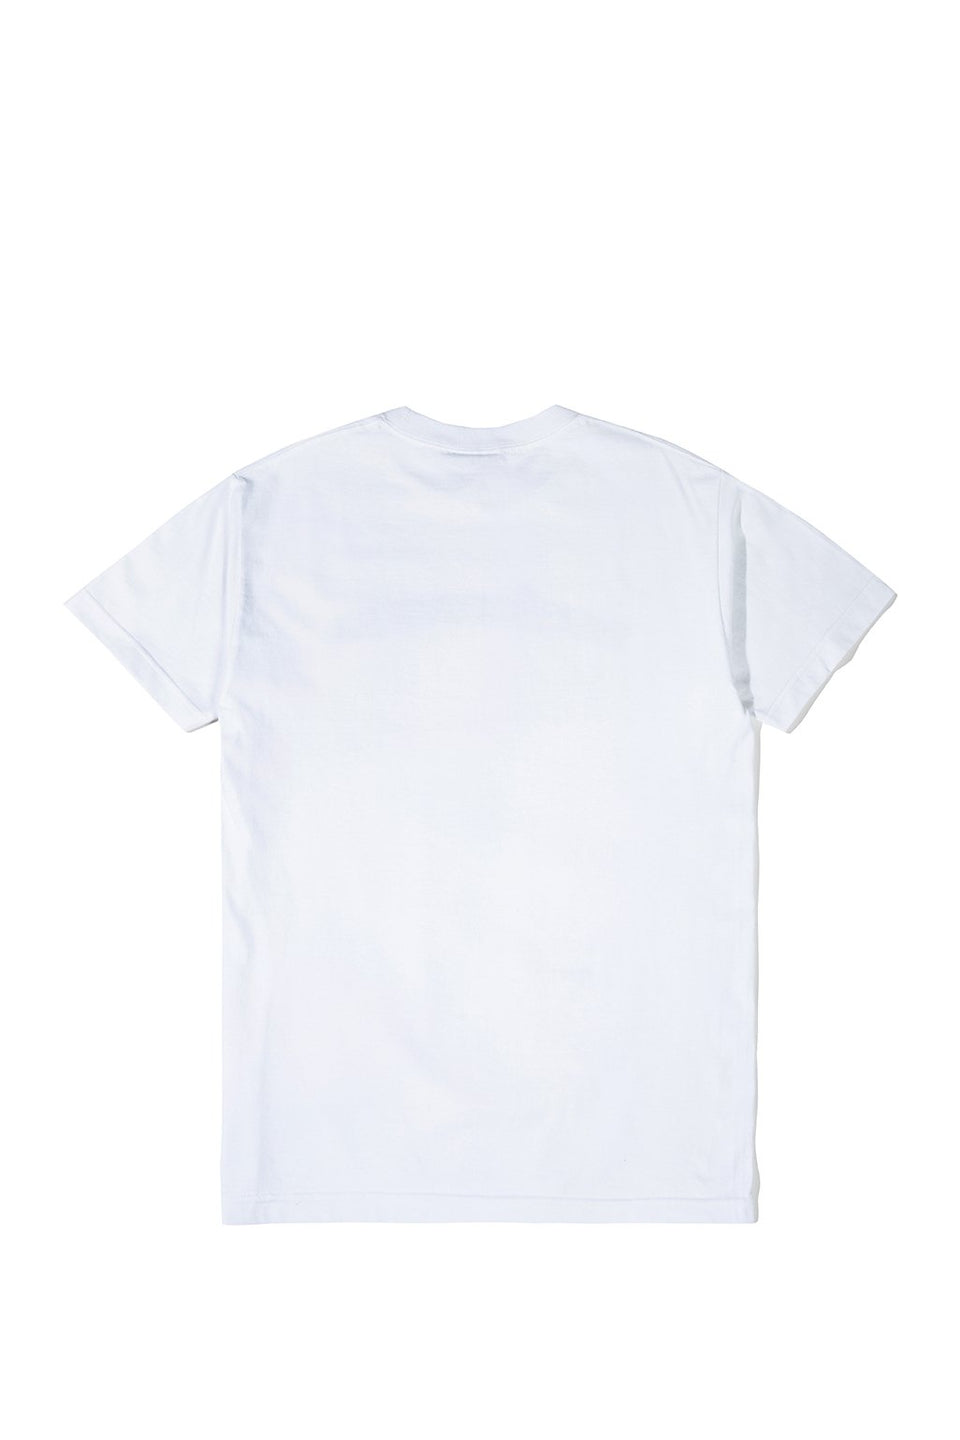 The Hundreds Jams T-Shirt TOPS White